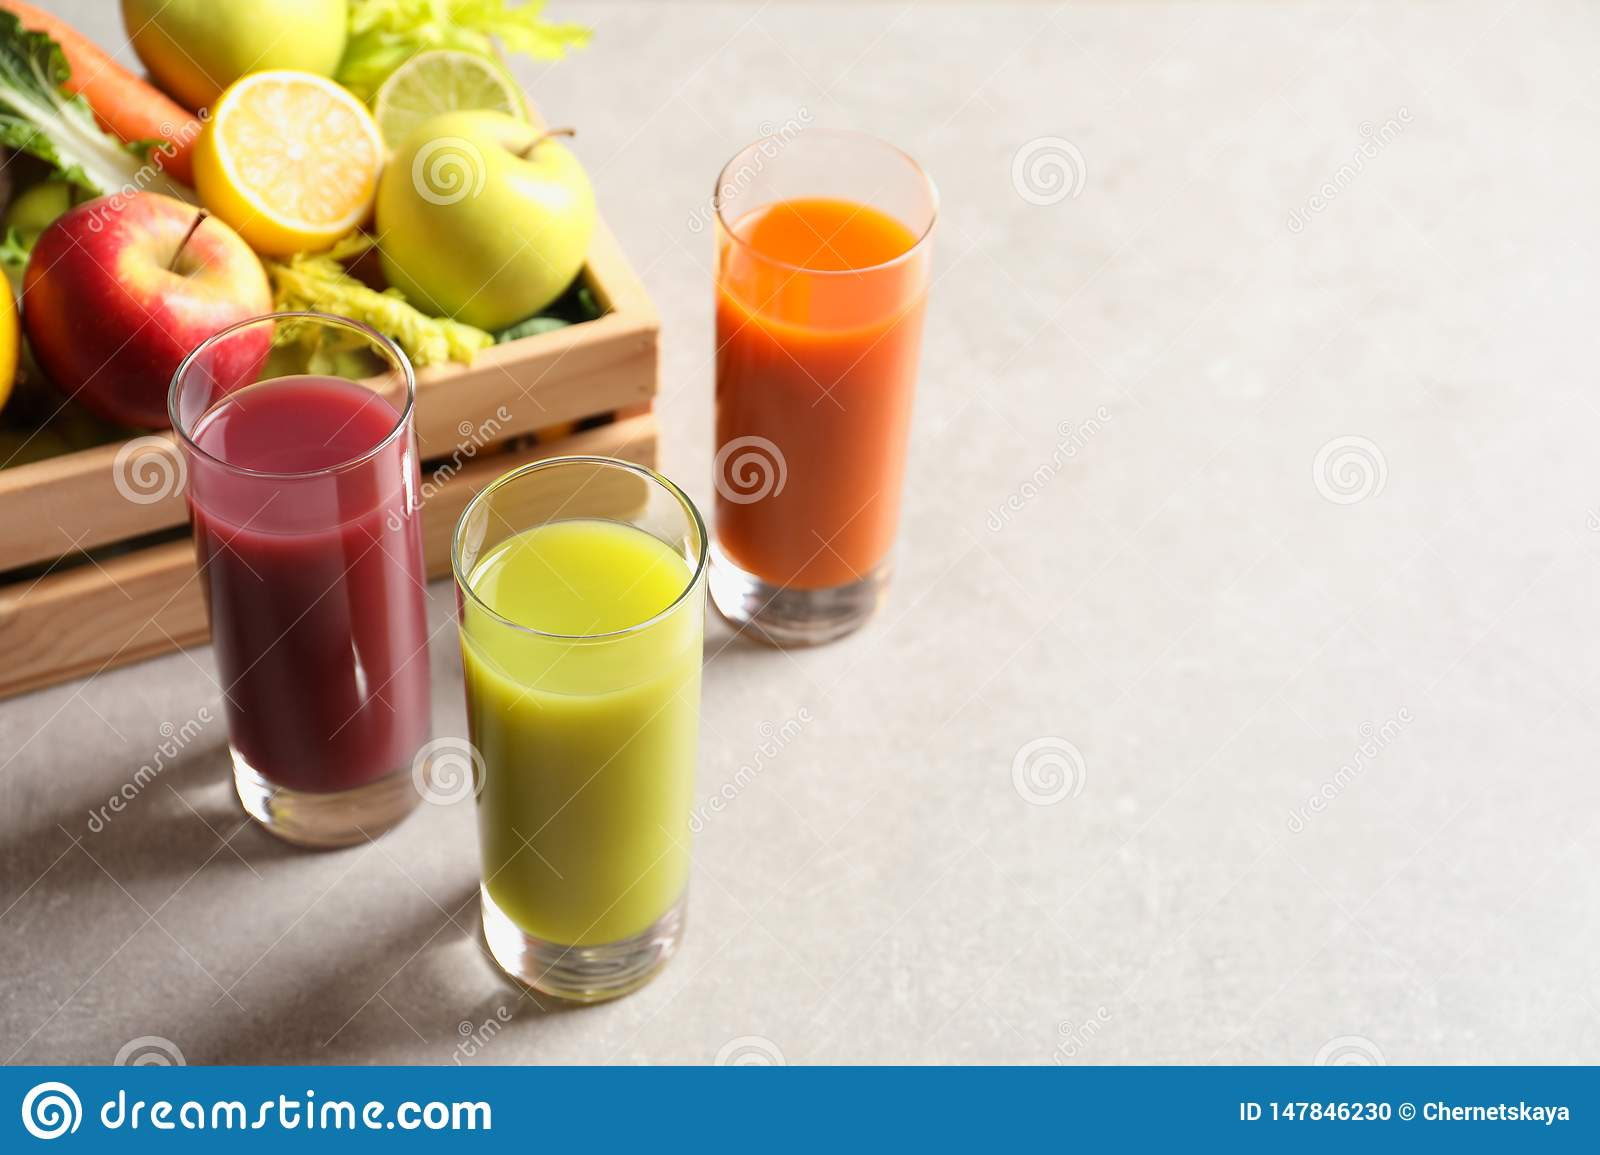 Glasses of different juices and wooden crate with fresh ingredients on table.